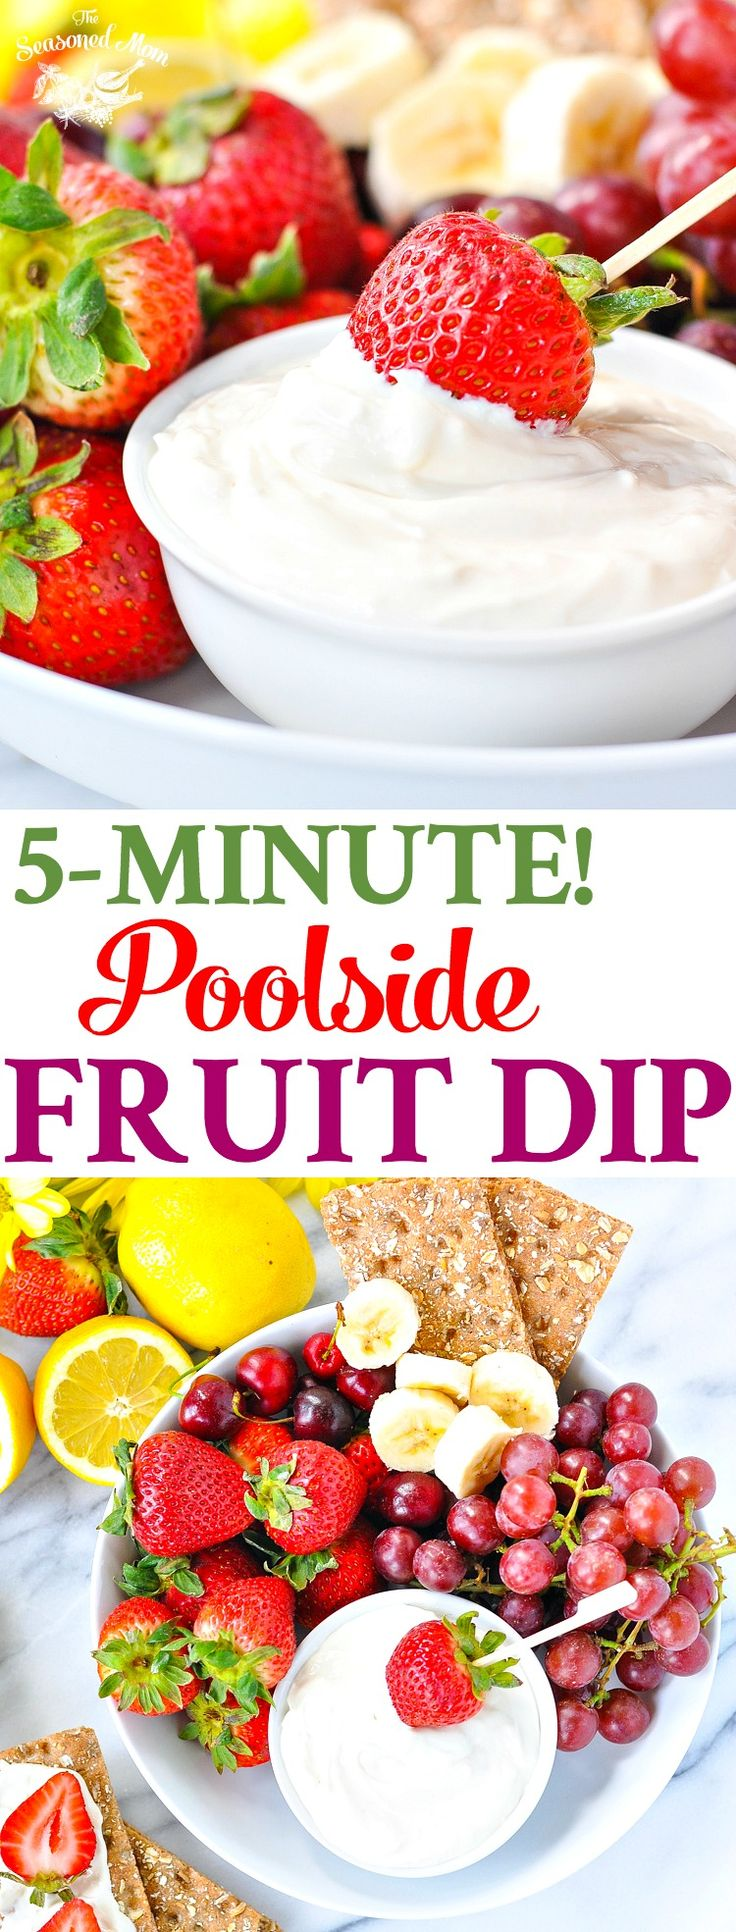 5-Minute Poolside Fruit Dip! Healthy Snacks for Kids   Snack Ideas   Snacks for Party   Snacks Healthy   Healthy 5 Ingredient or Less Recipes   Healthy Recipes   Healthy Snacks   Healthy Desserts   Dip Recipes   Dips   Appetizers   Gluten Free #SurprisinglySatisfying #ad